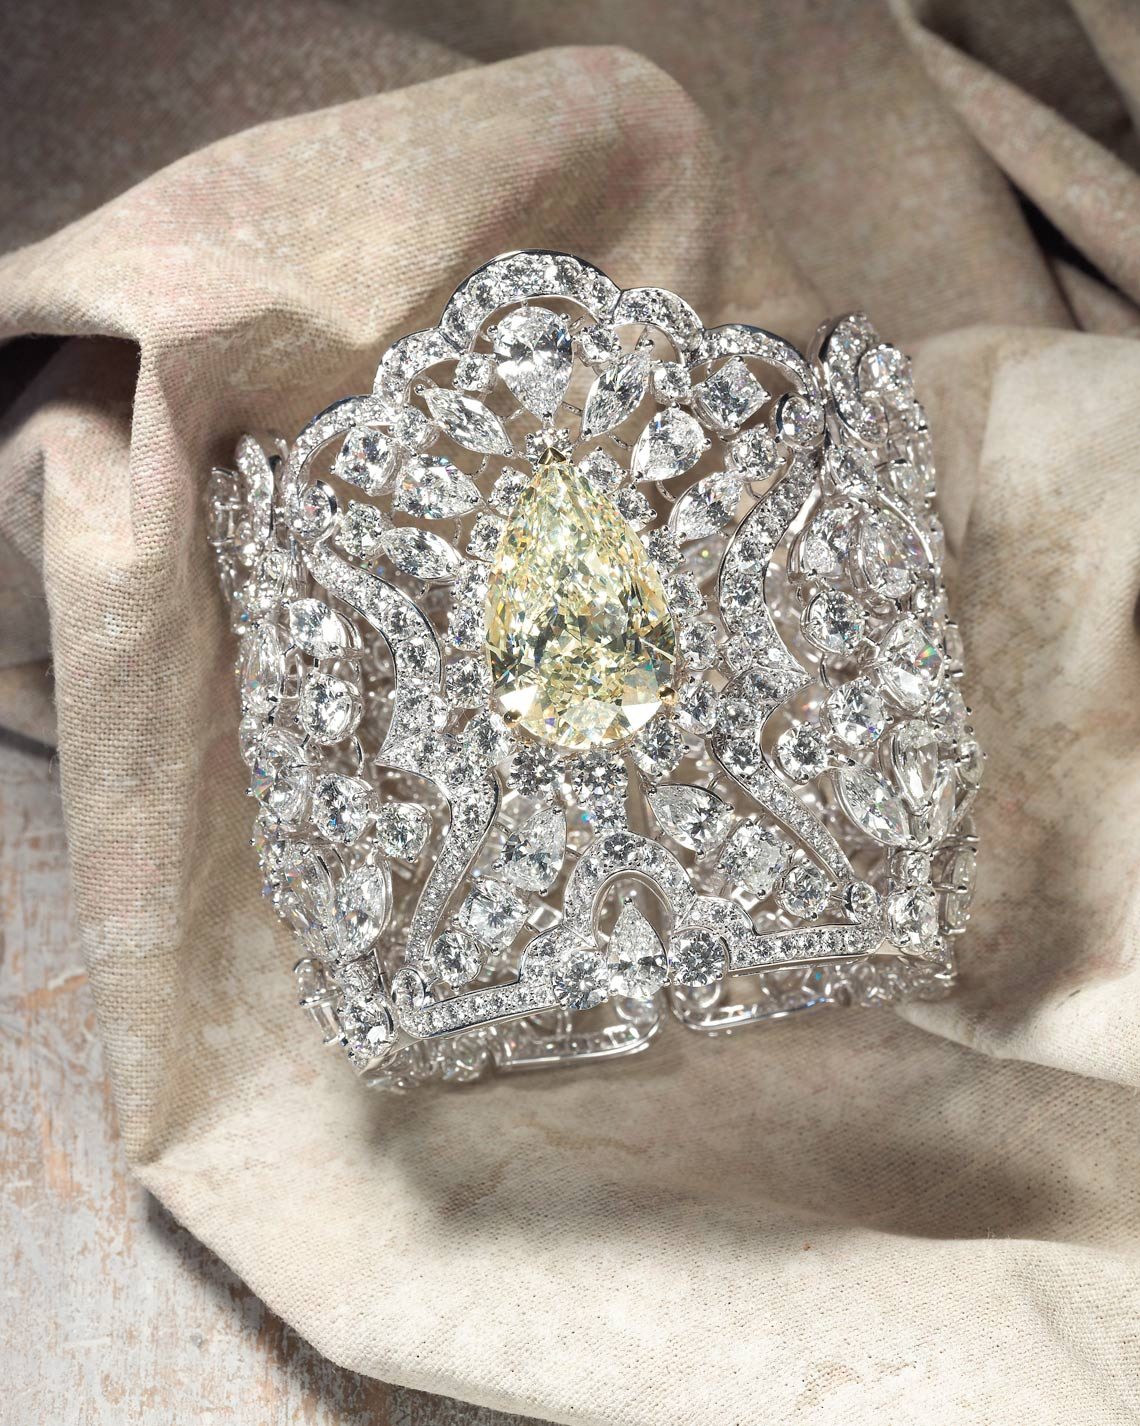 R0613JEWEL09-copy.jpg